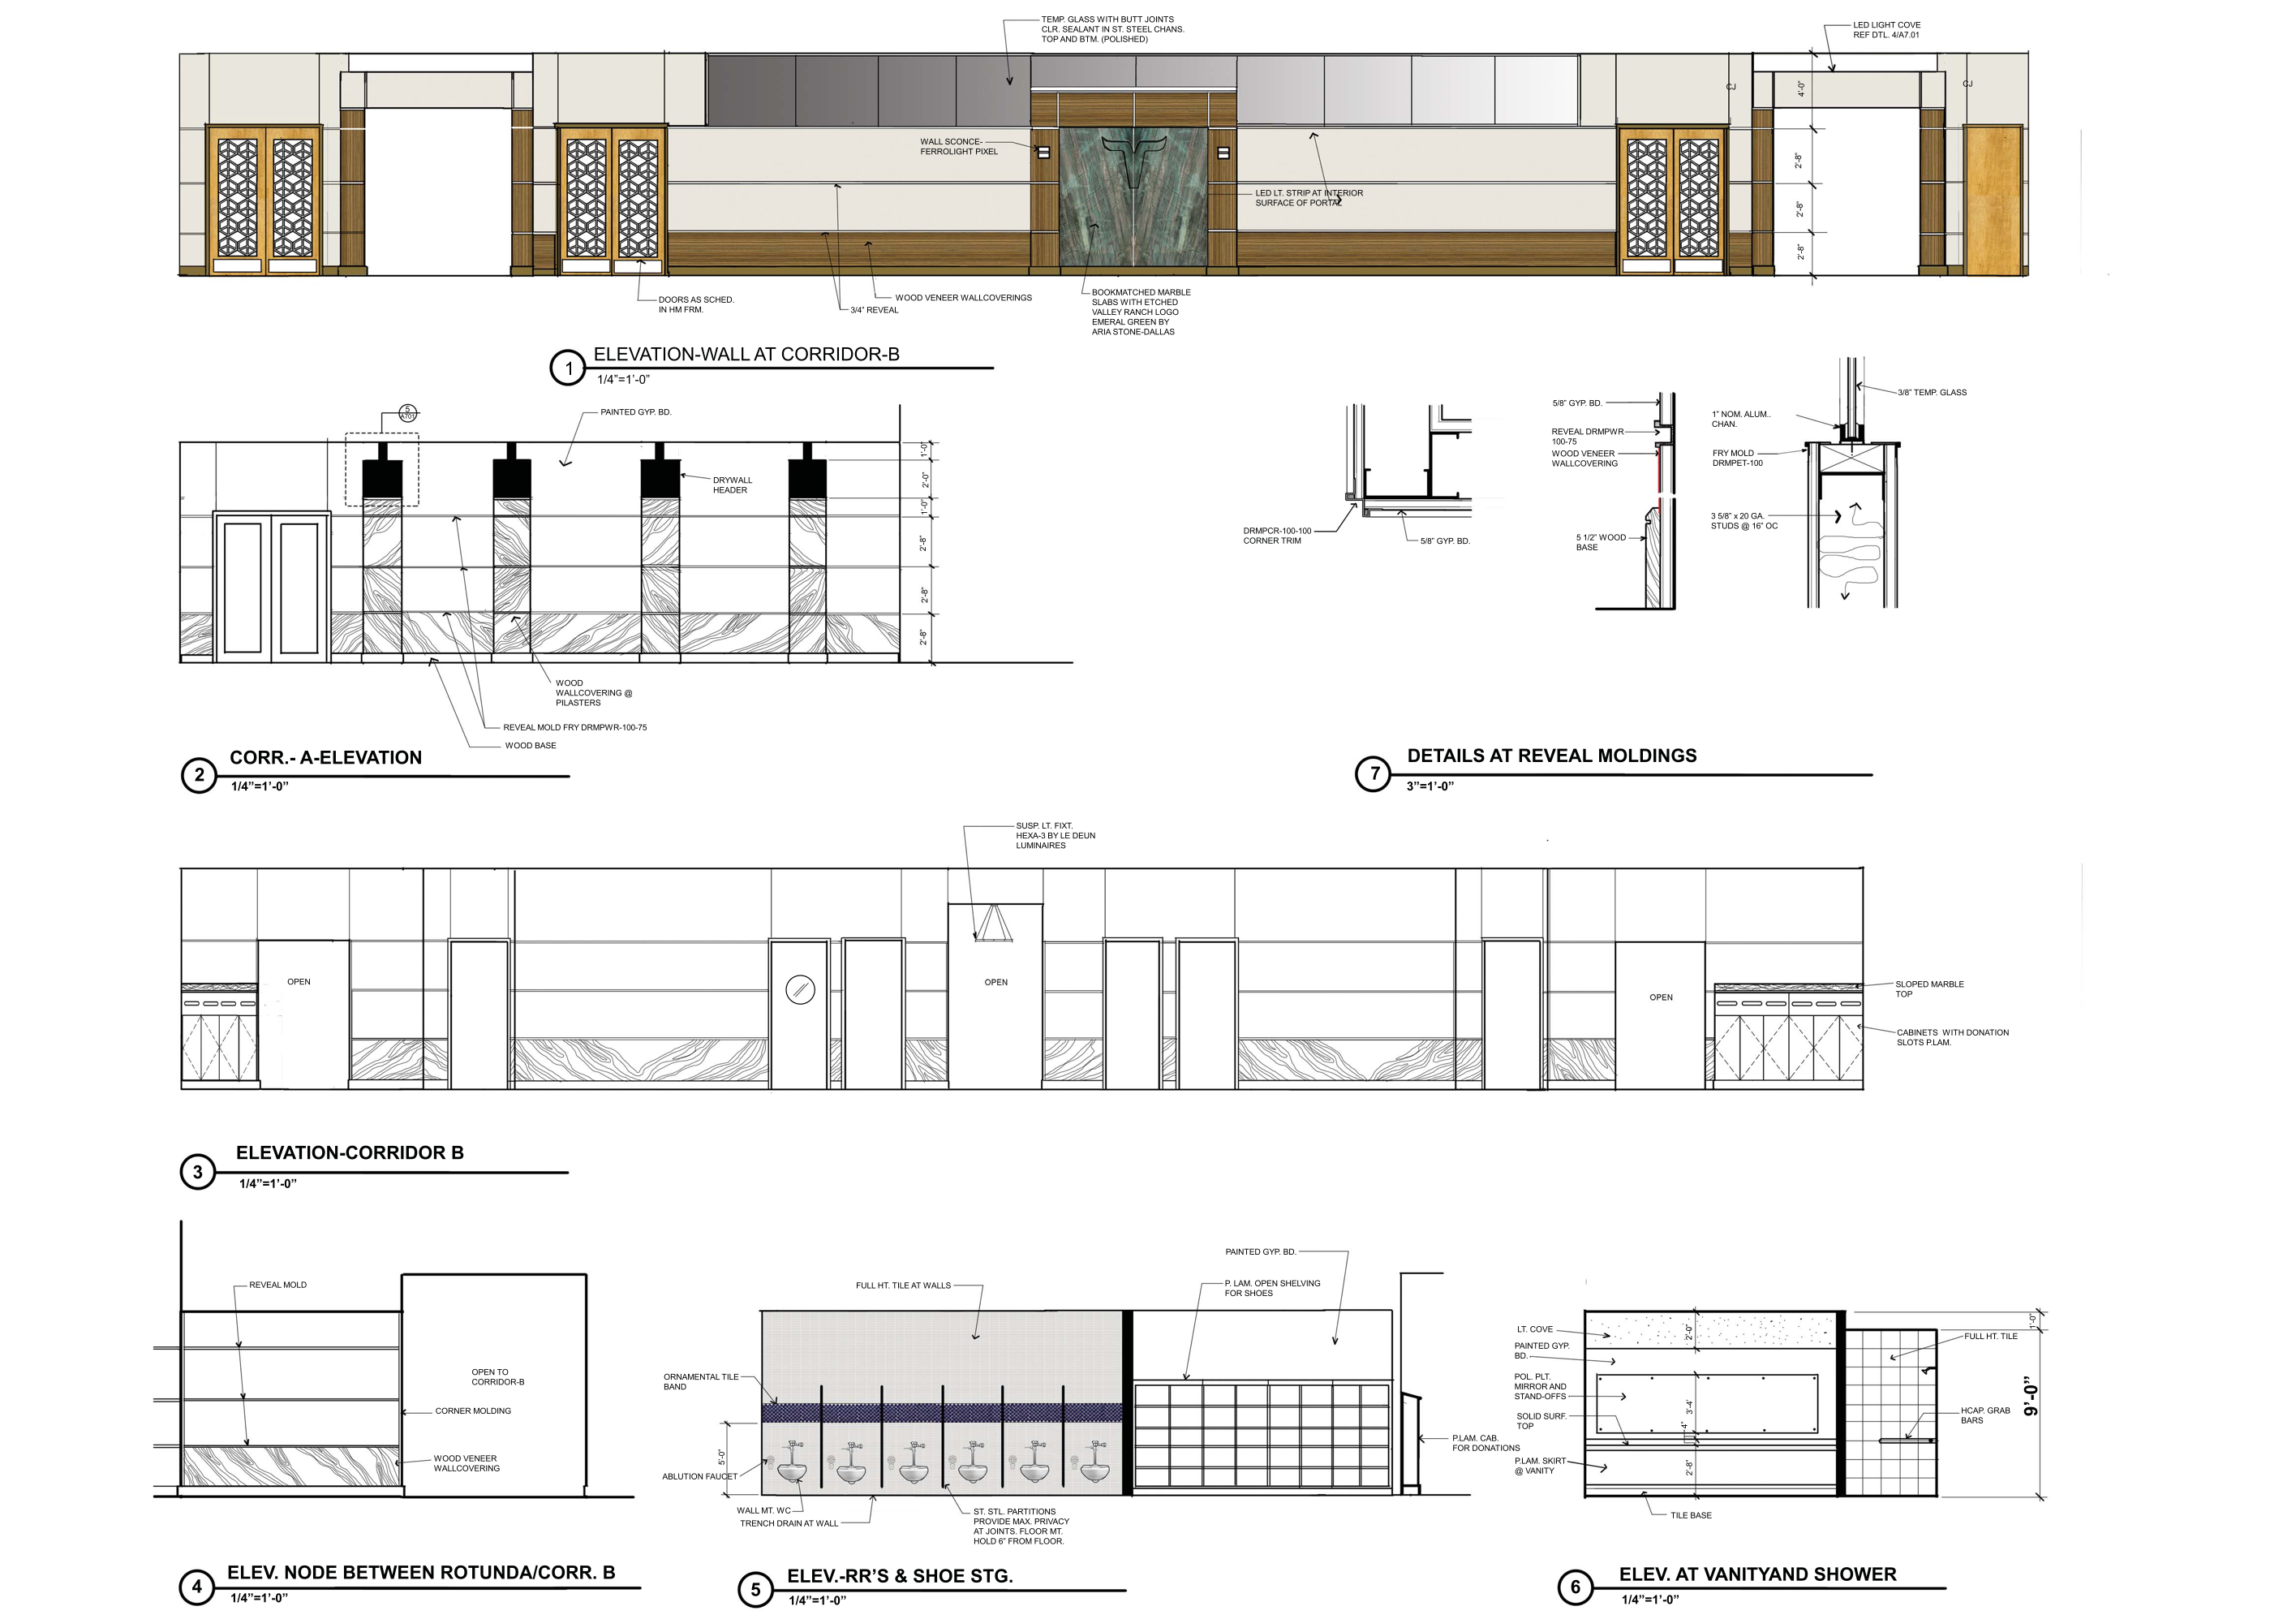 Blueprints valley ranch islamic center blueprints malvernweather Image collections